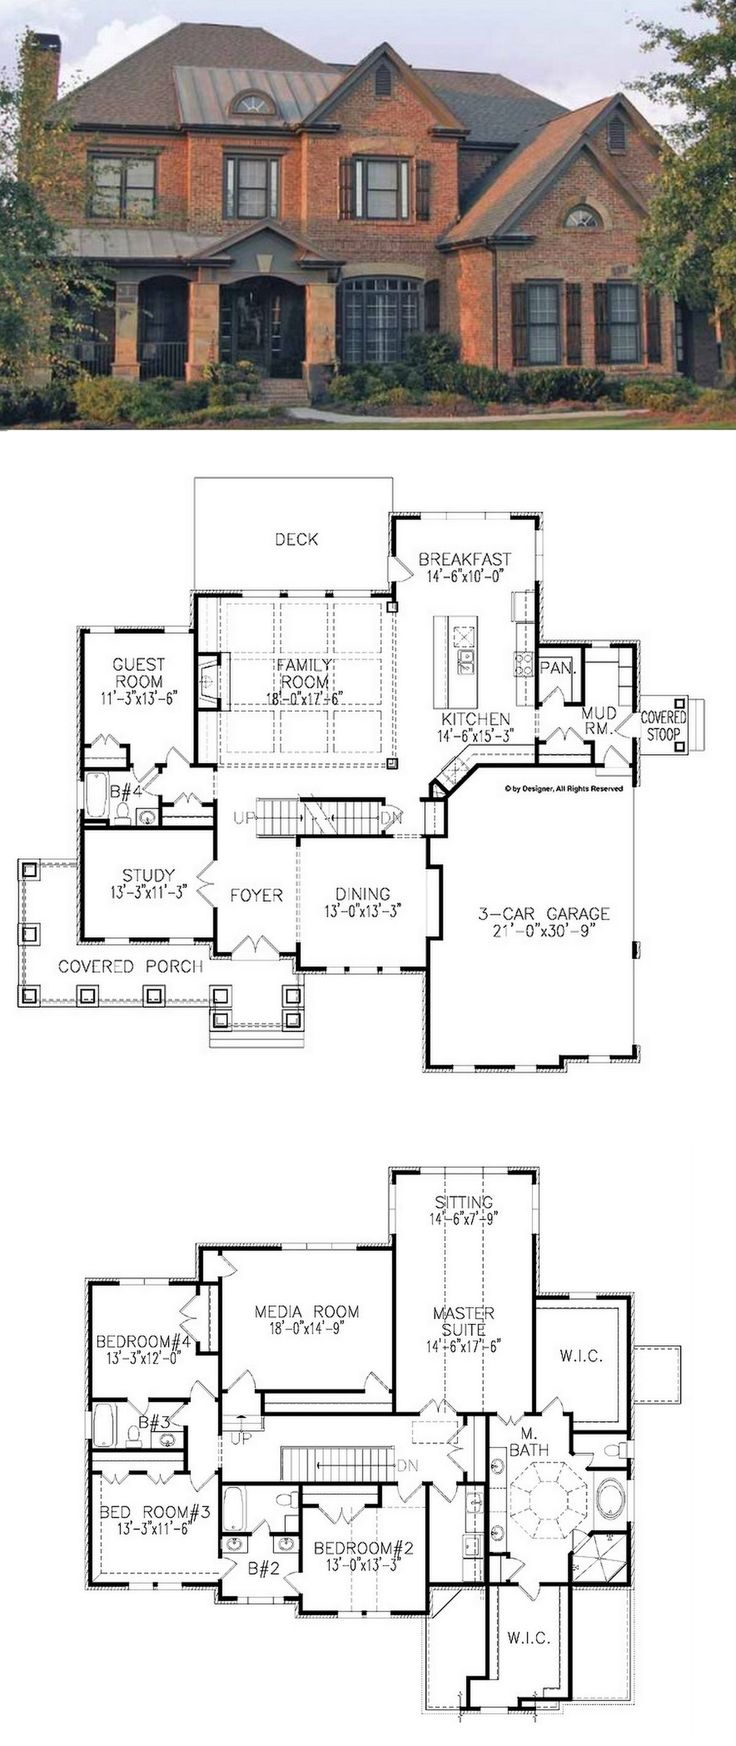 7 Bedroom House For Rent: Pin By Martha Kenworthy On Home Ideas